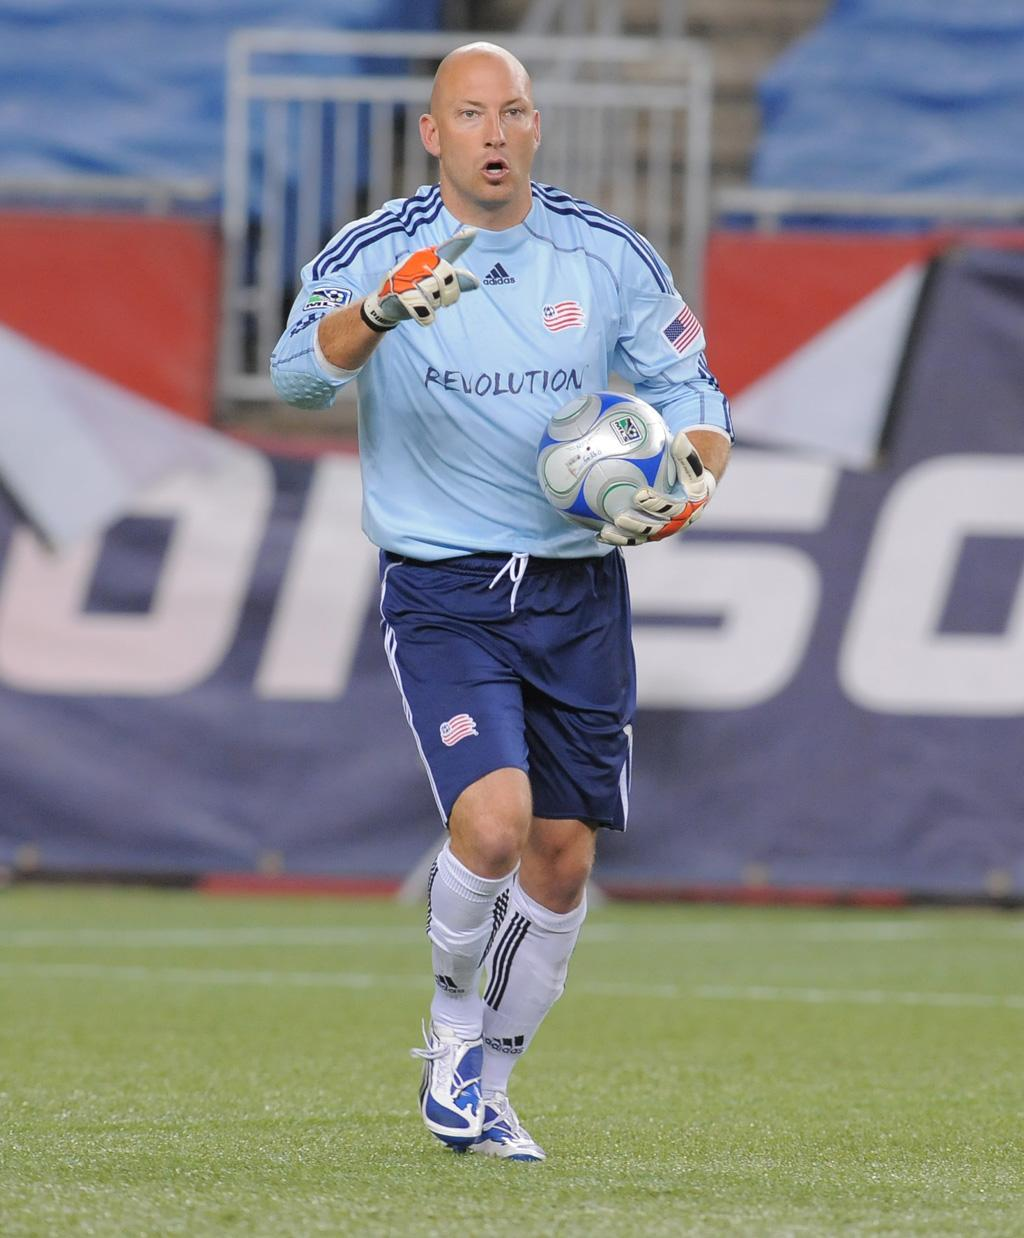 Matt Reis has returned to the active roster for the Revolution following his recovery from a pair of off-season injuries.